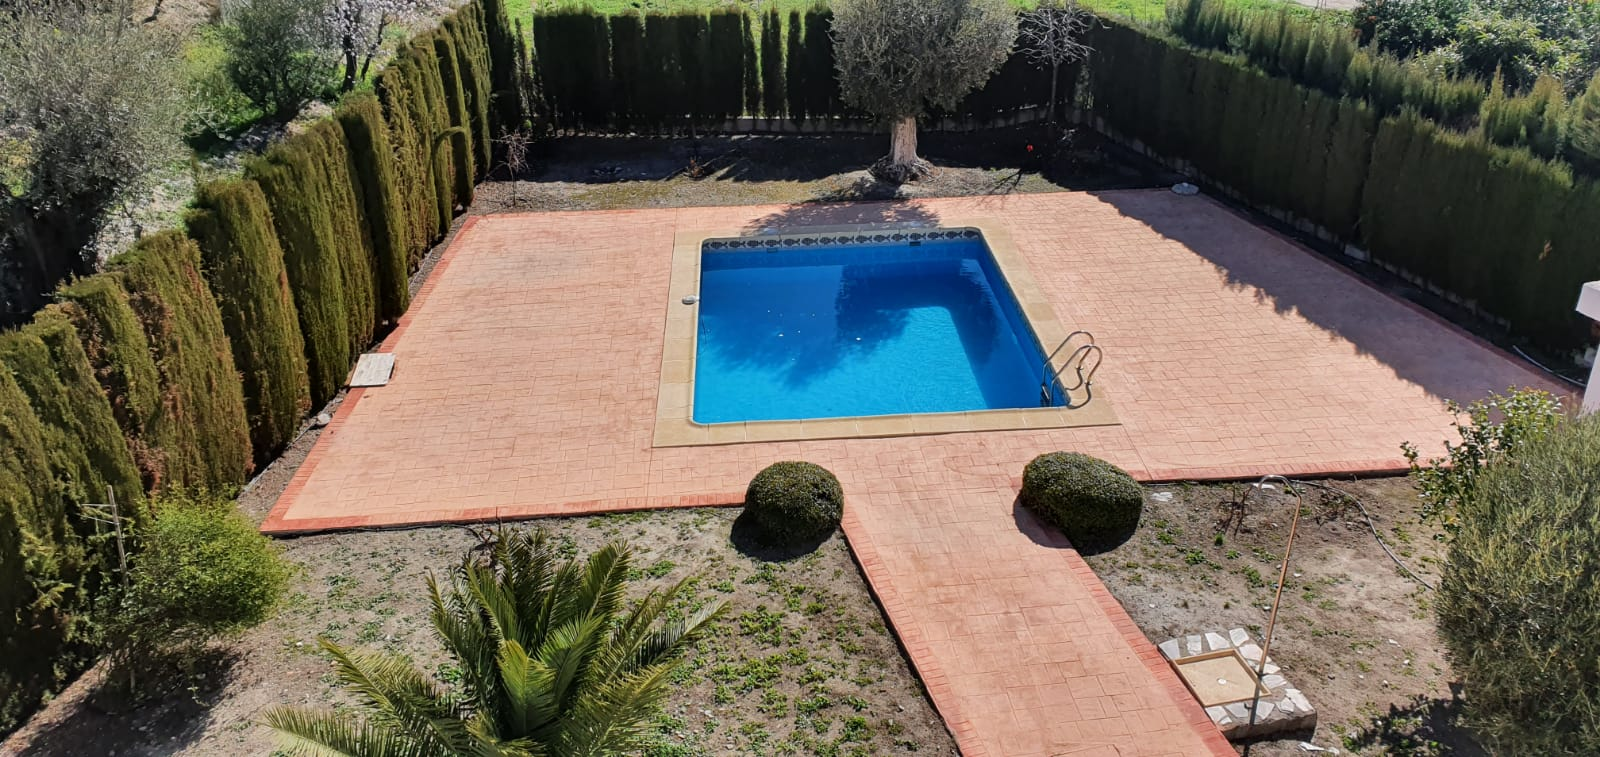 4 Bedroom House in gated community with swimming pool and gardens.